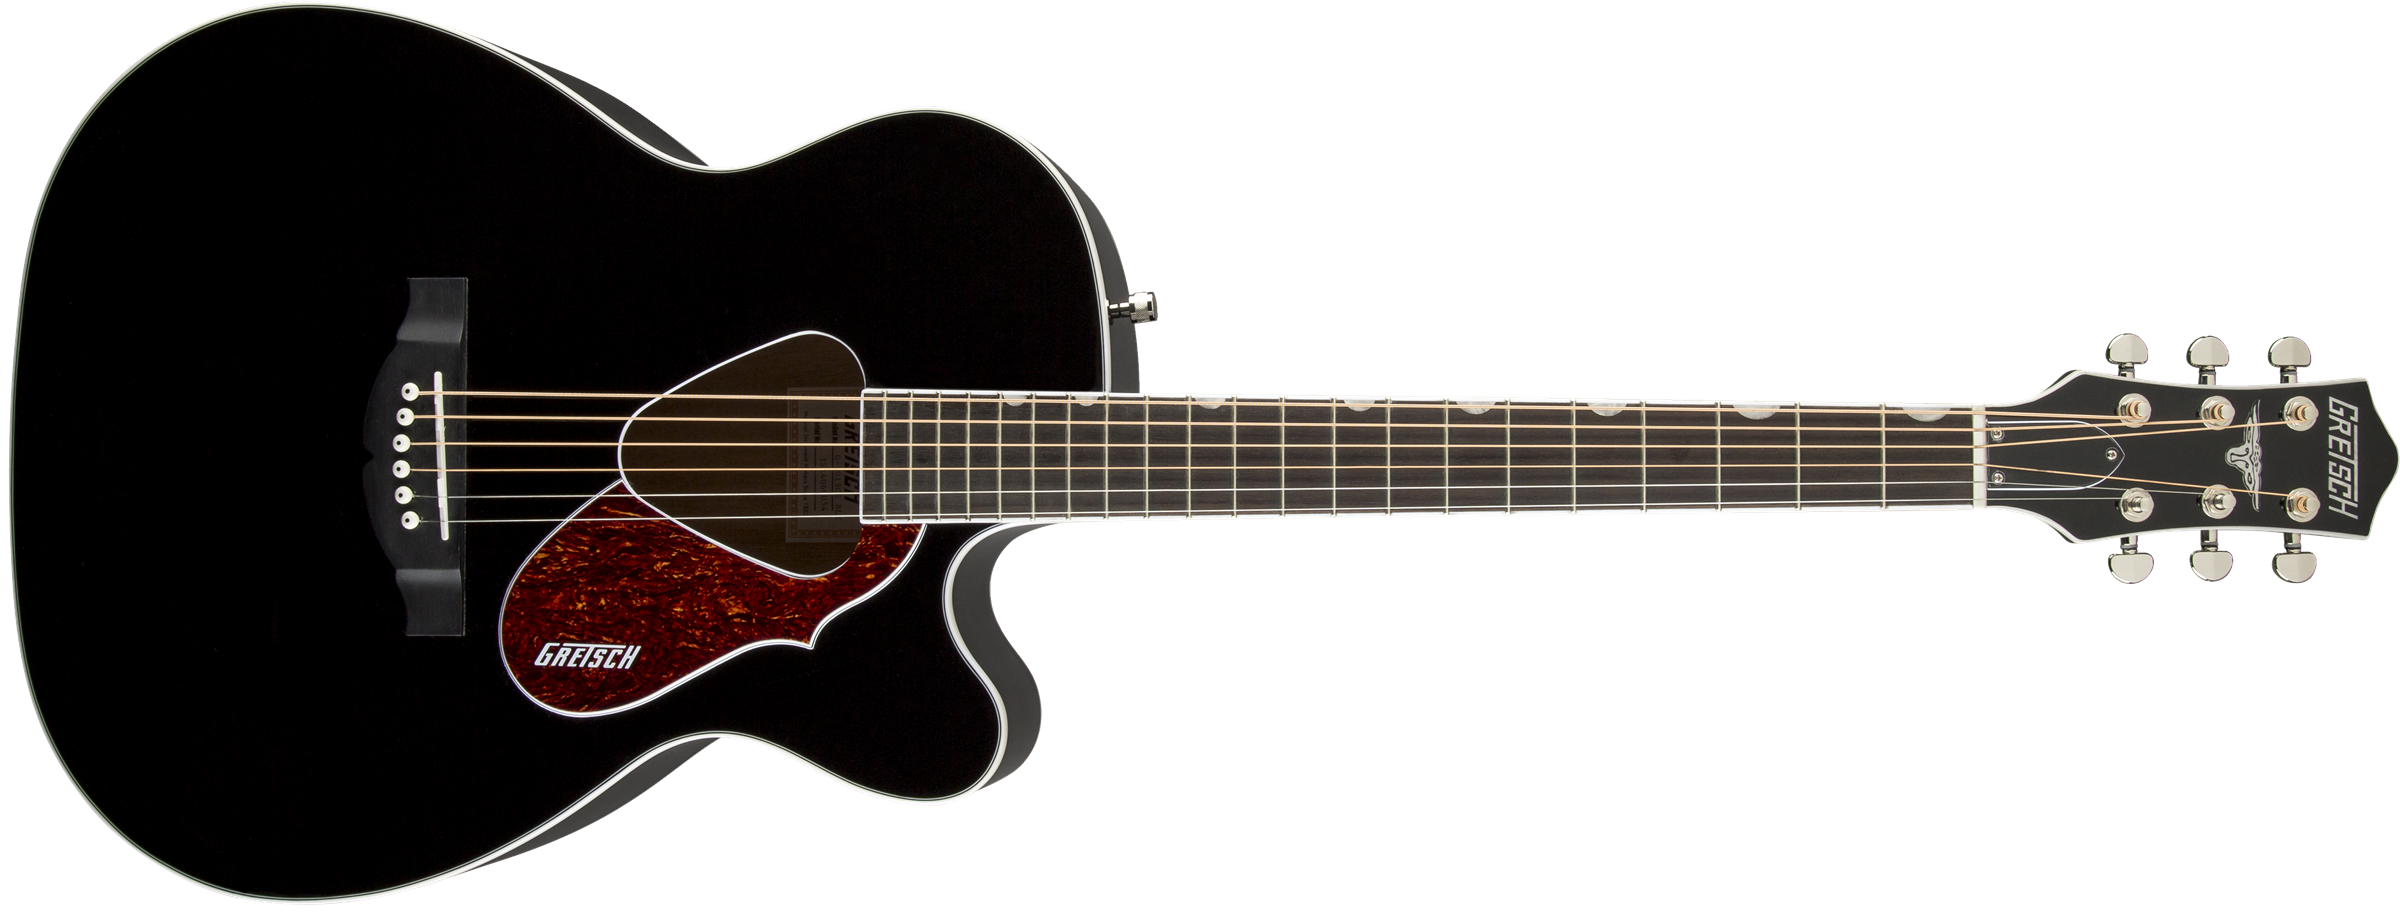 GRETSCH G5013CE RANCHER JR BLK - 2714013506